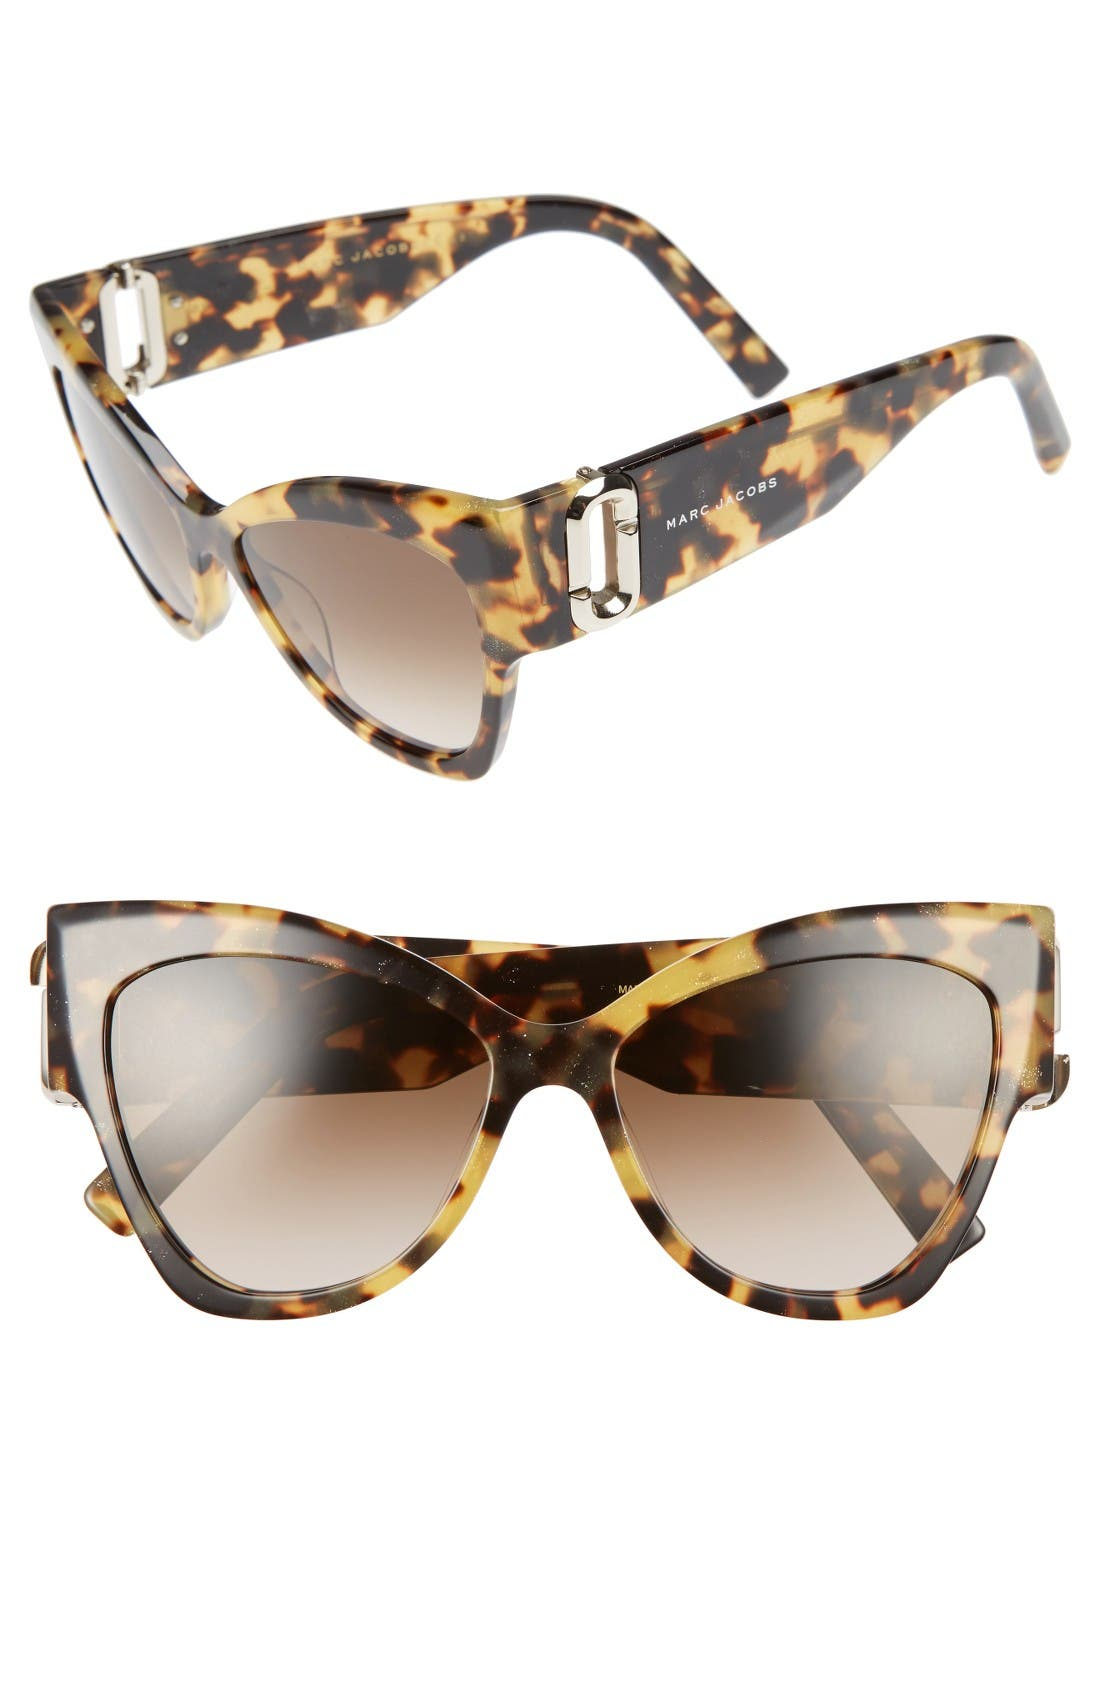 Alternate Image 1 Selected - MARC JACOBS 54mm Oversized Sunglasses